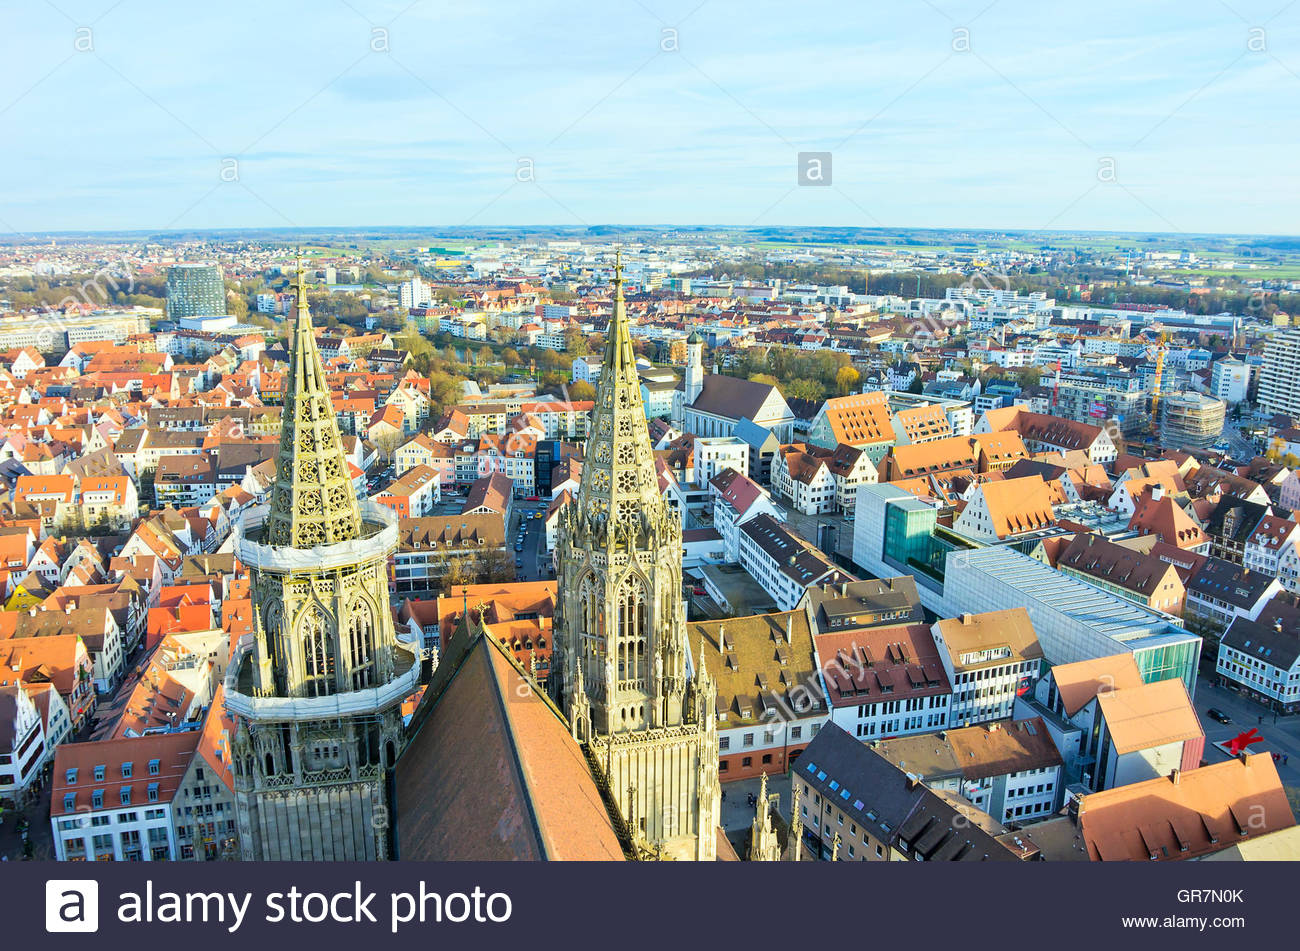 View From The Ulm Minster Overlooking The Eastern Steeples And The City, Ulm Germany. Stock Photo